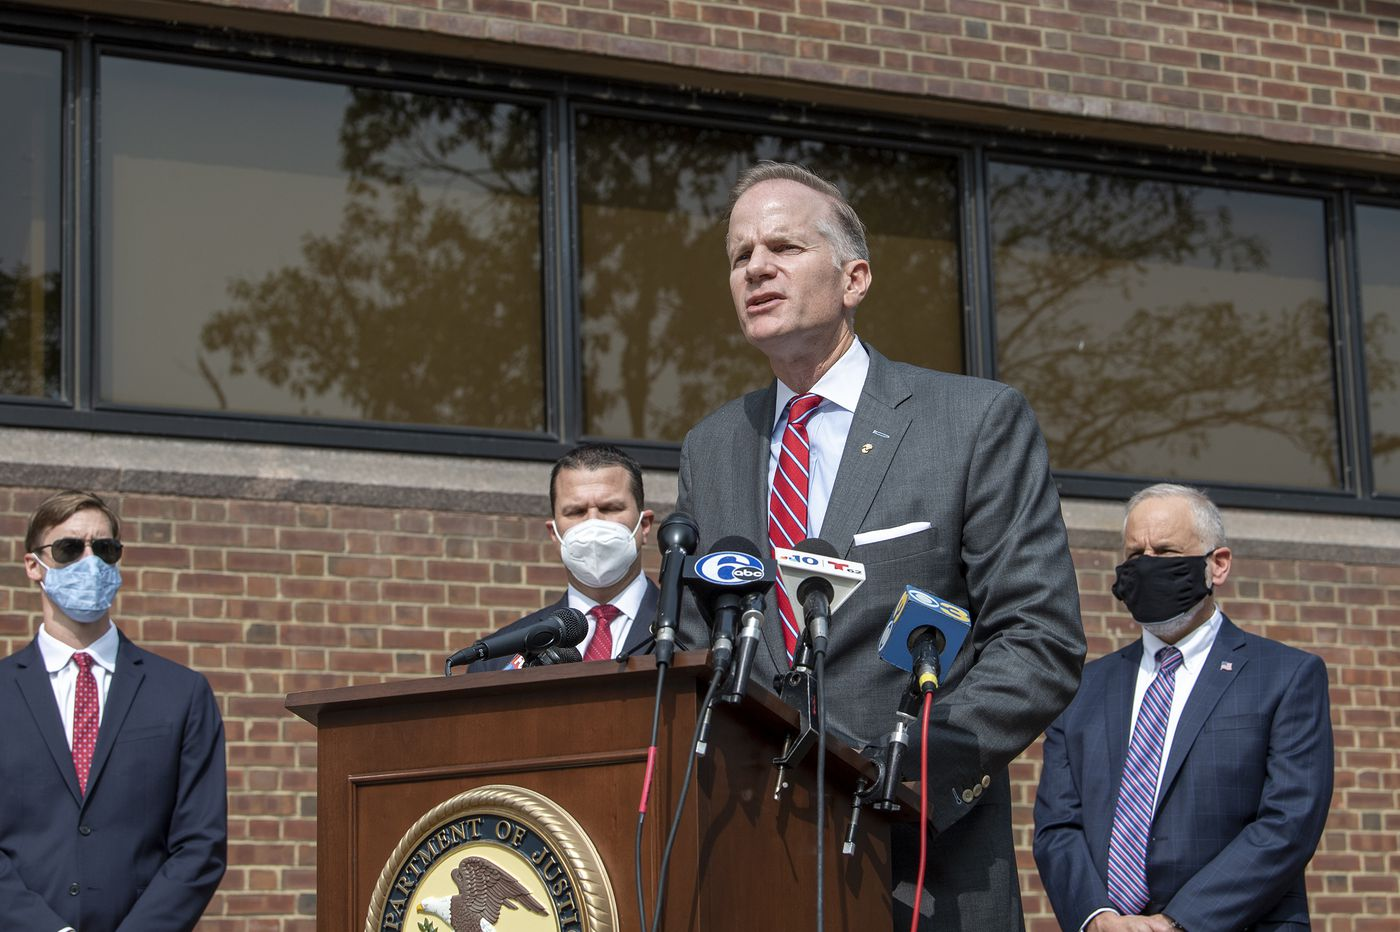 U.S. Attorney William McSwain resigns after a tenure marked by high-profile cases, public feud with Krasner